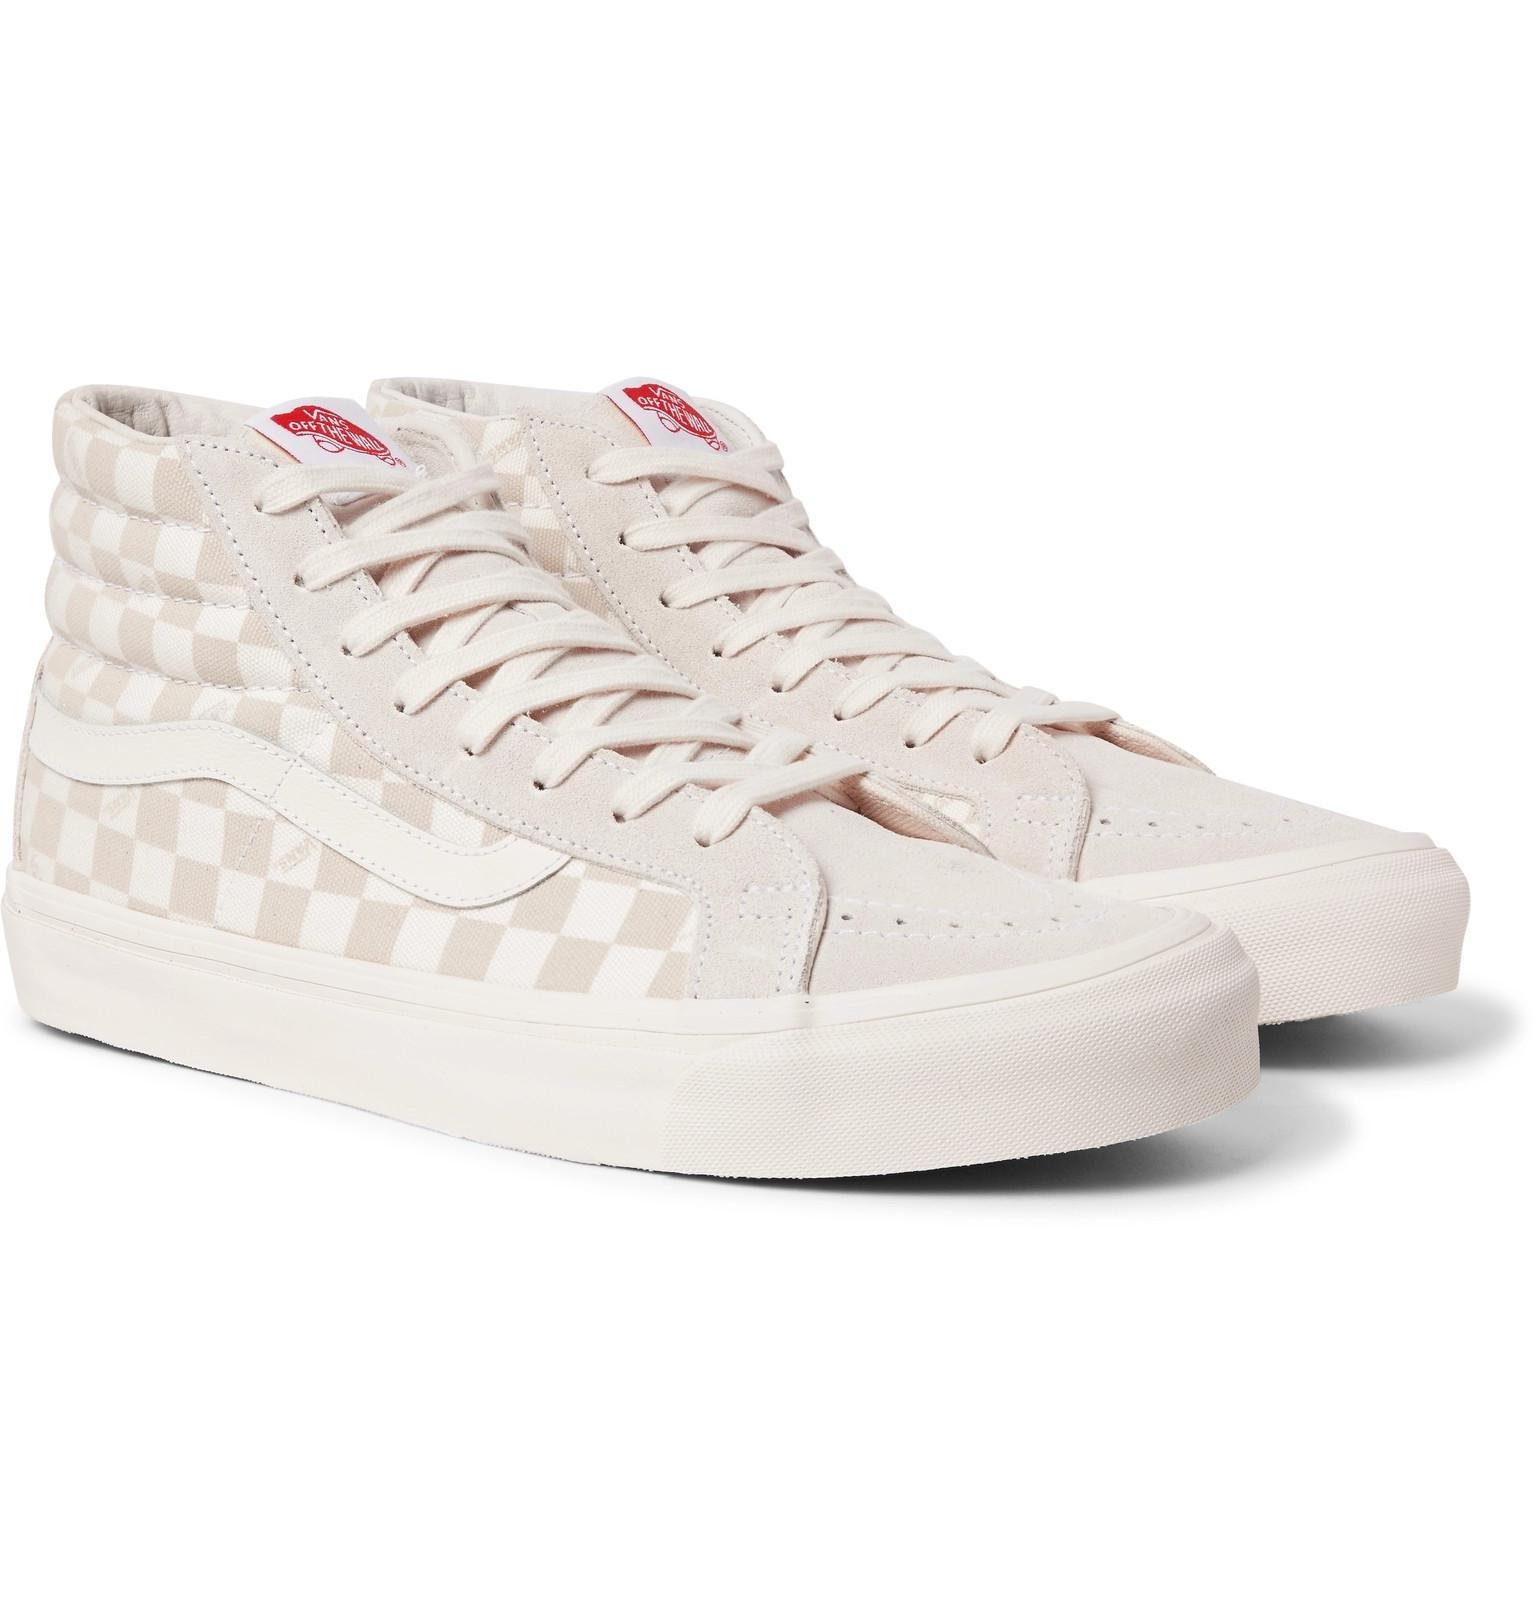 319161d289ce Lyst - Vans Beige Sk8-hi Lx Checkerboard Leather And Canvas High-top ...